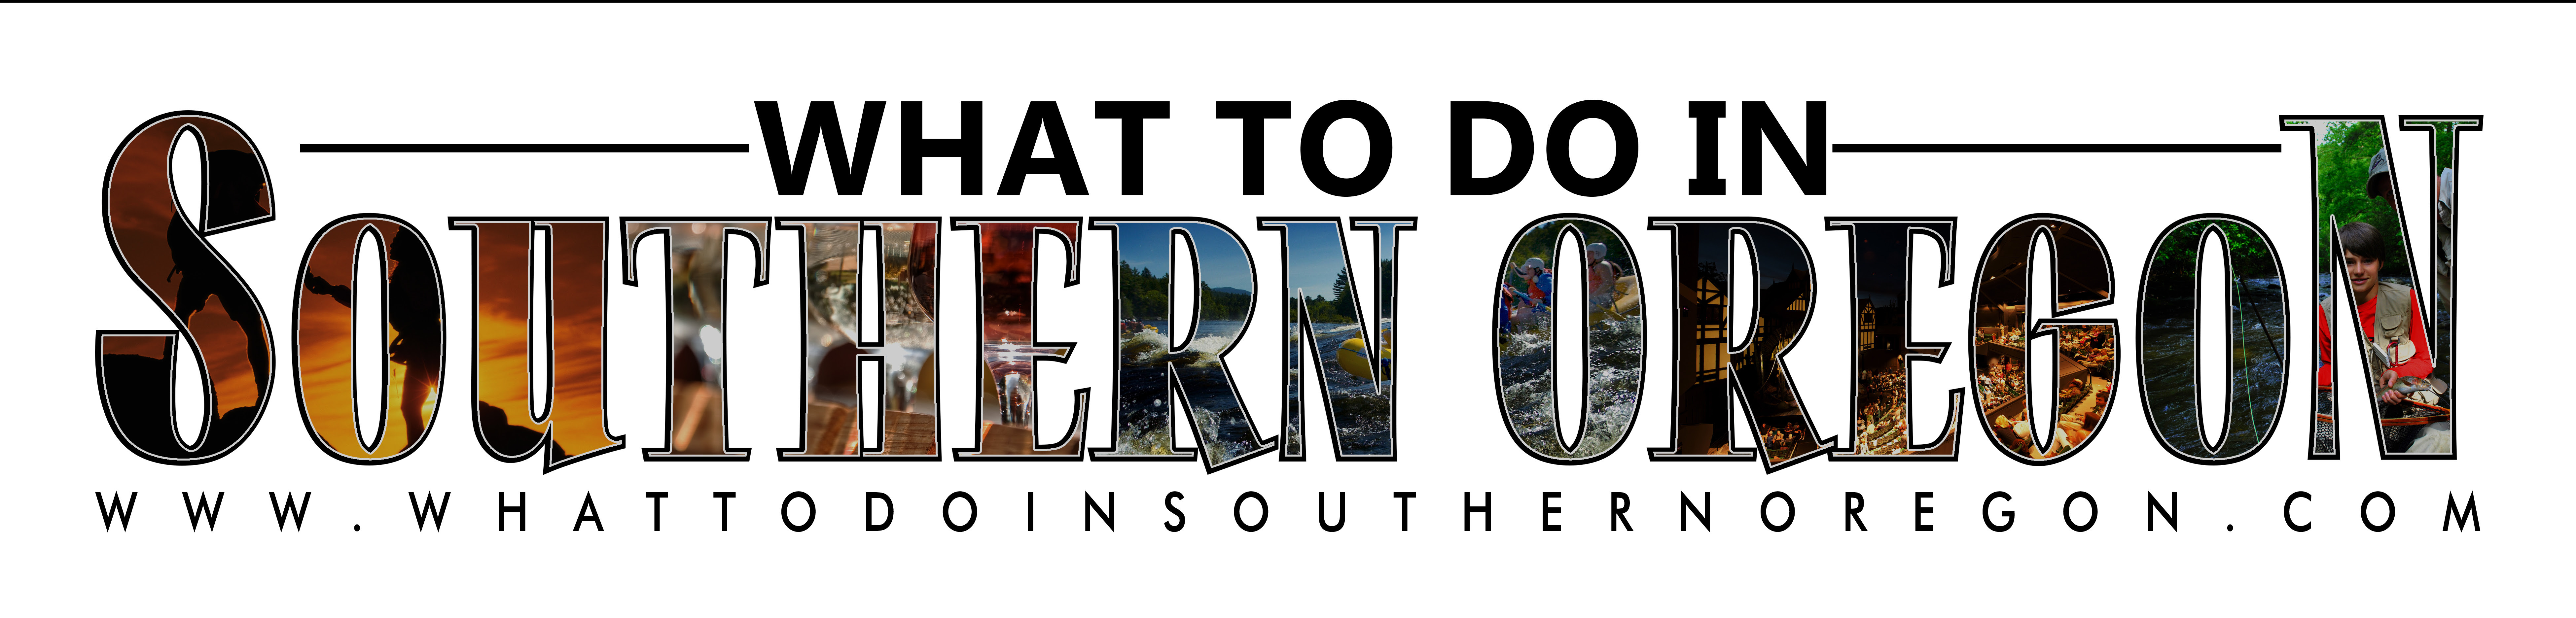 What to do in Southern Oregon